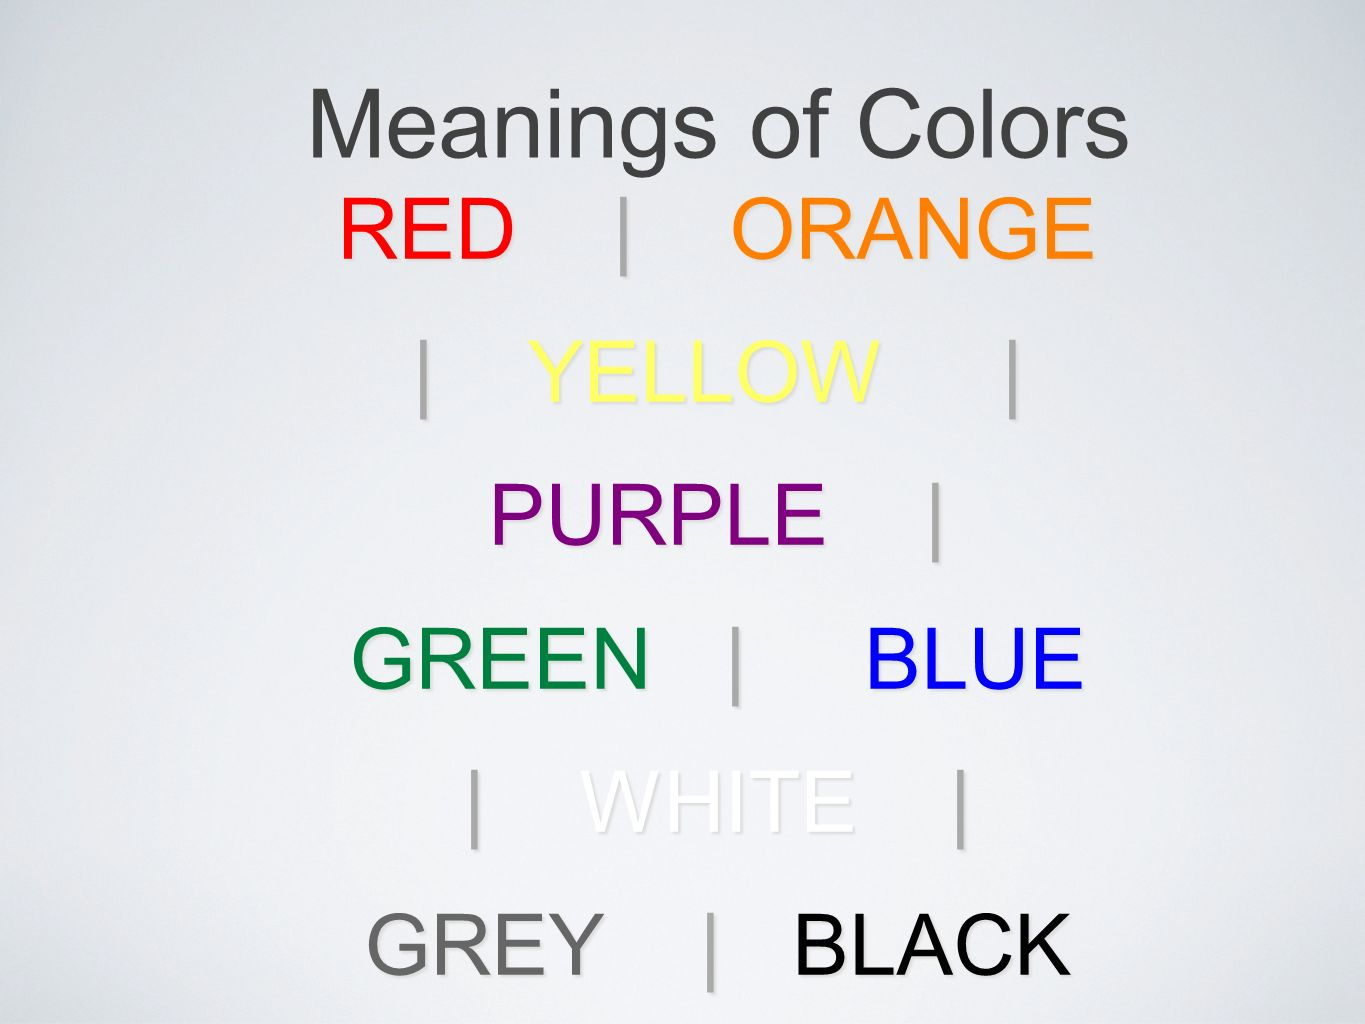 Meanings of Colors RE D Passion, Love, Anger Evokes strong emotions, associated with love, warmth, and comfort.